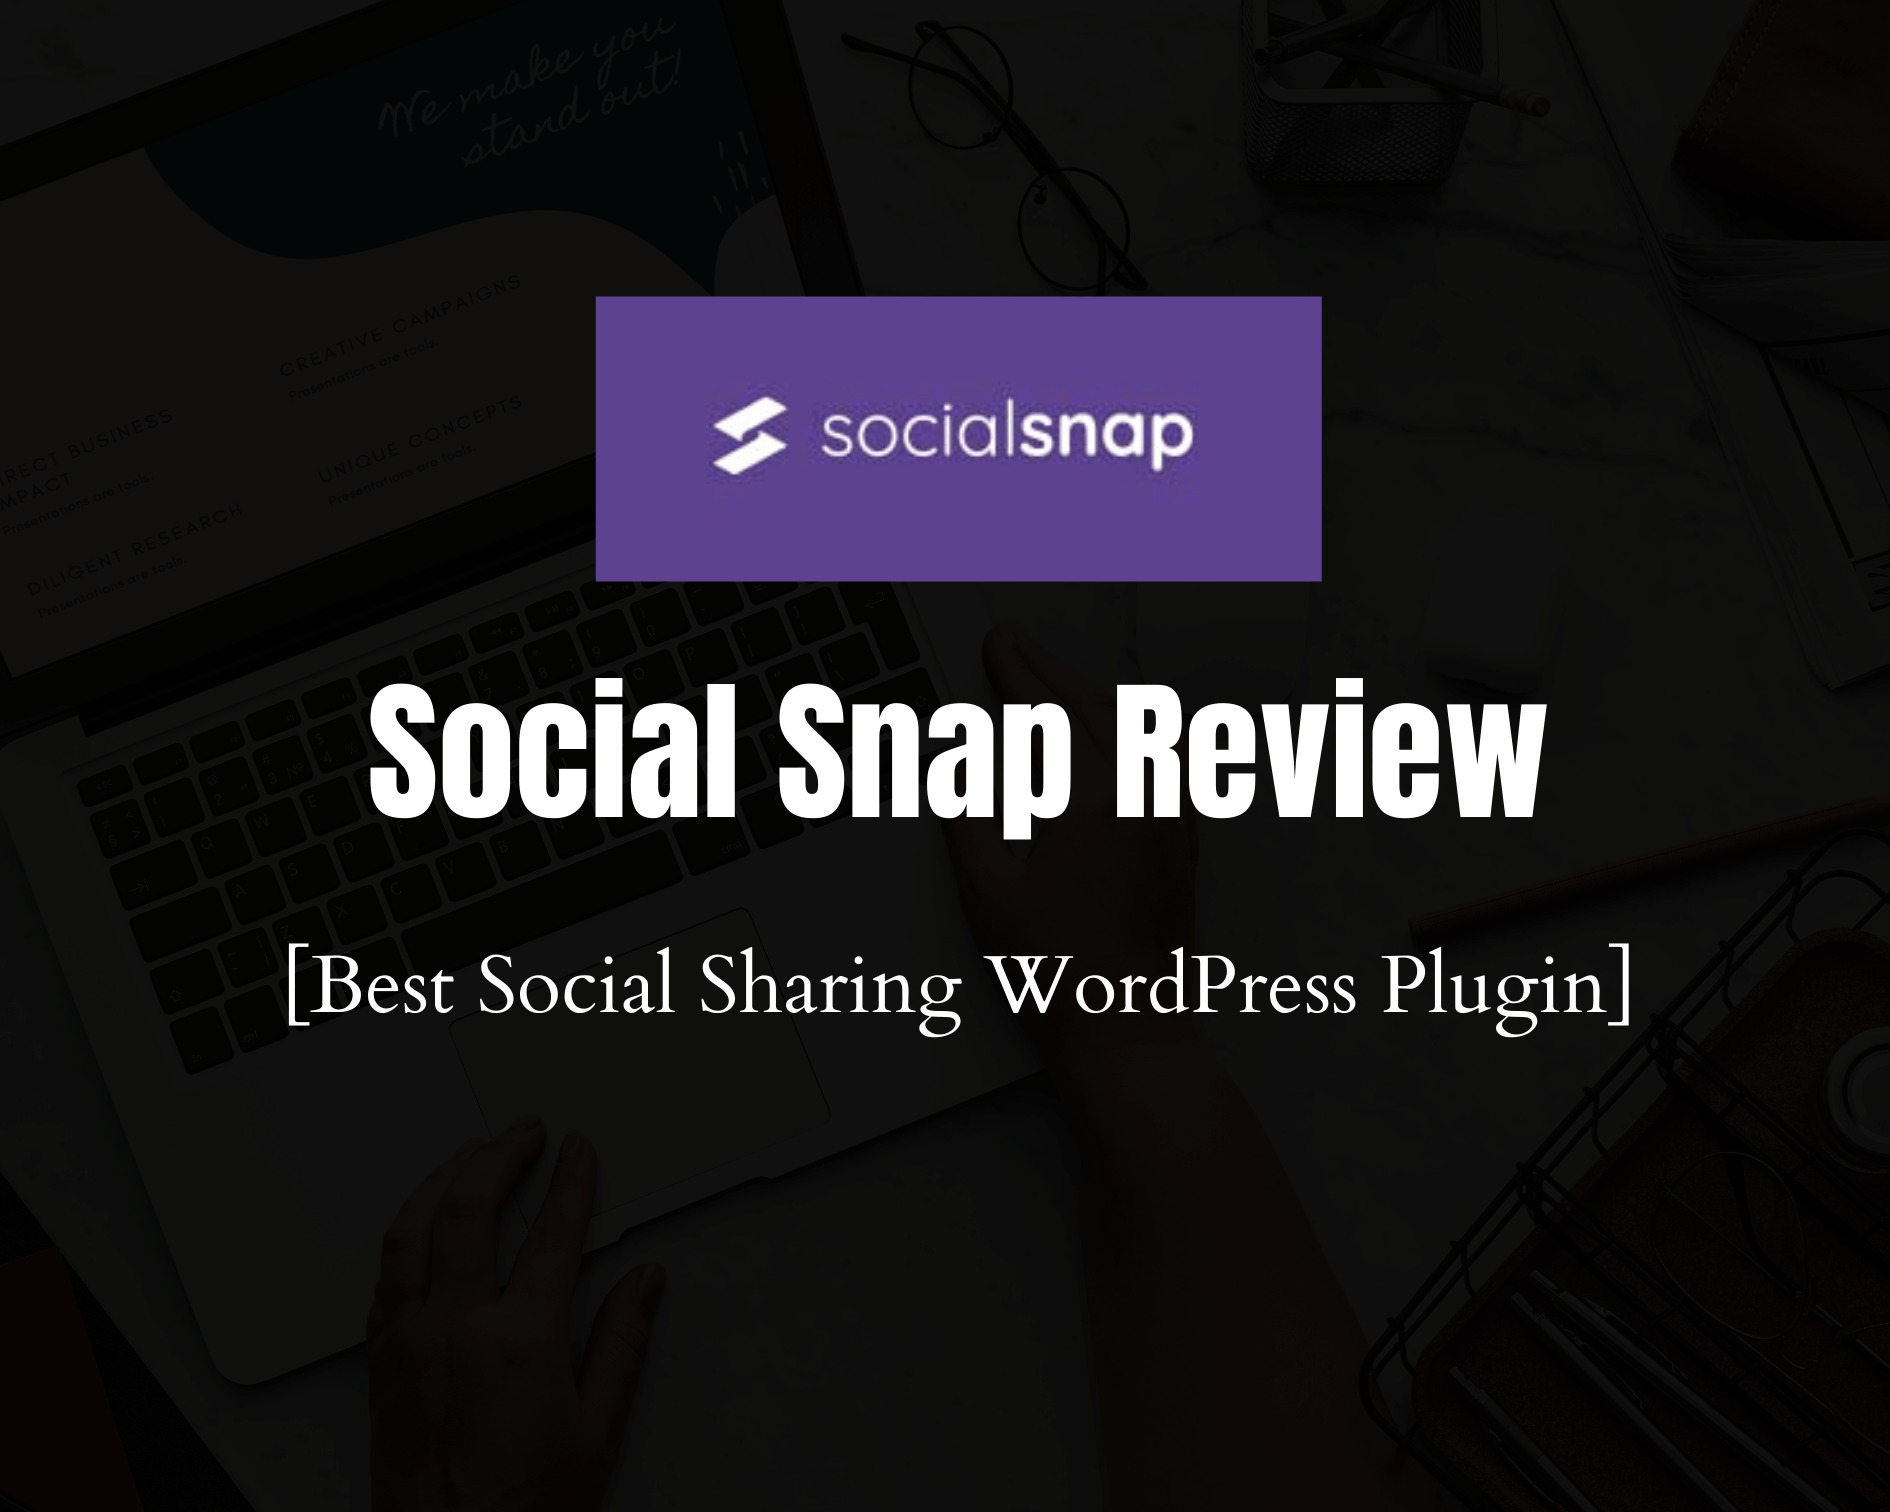 Social Snap Review 2020: Best Social Sharing WordPress Plugin